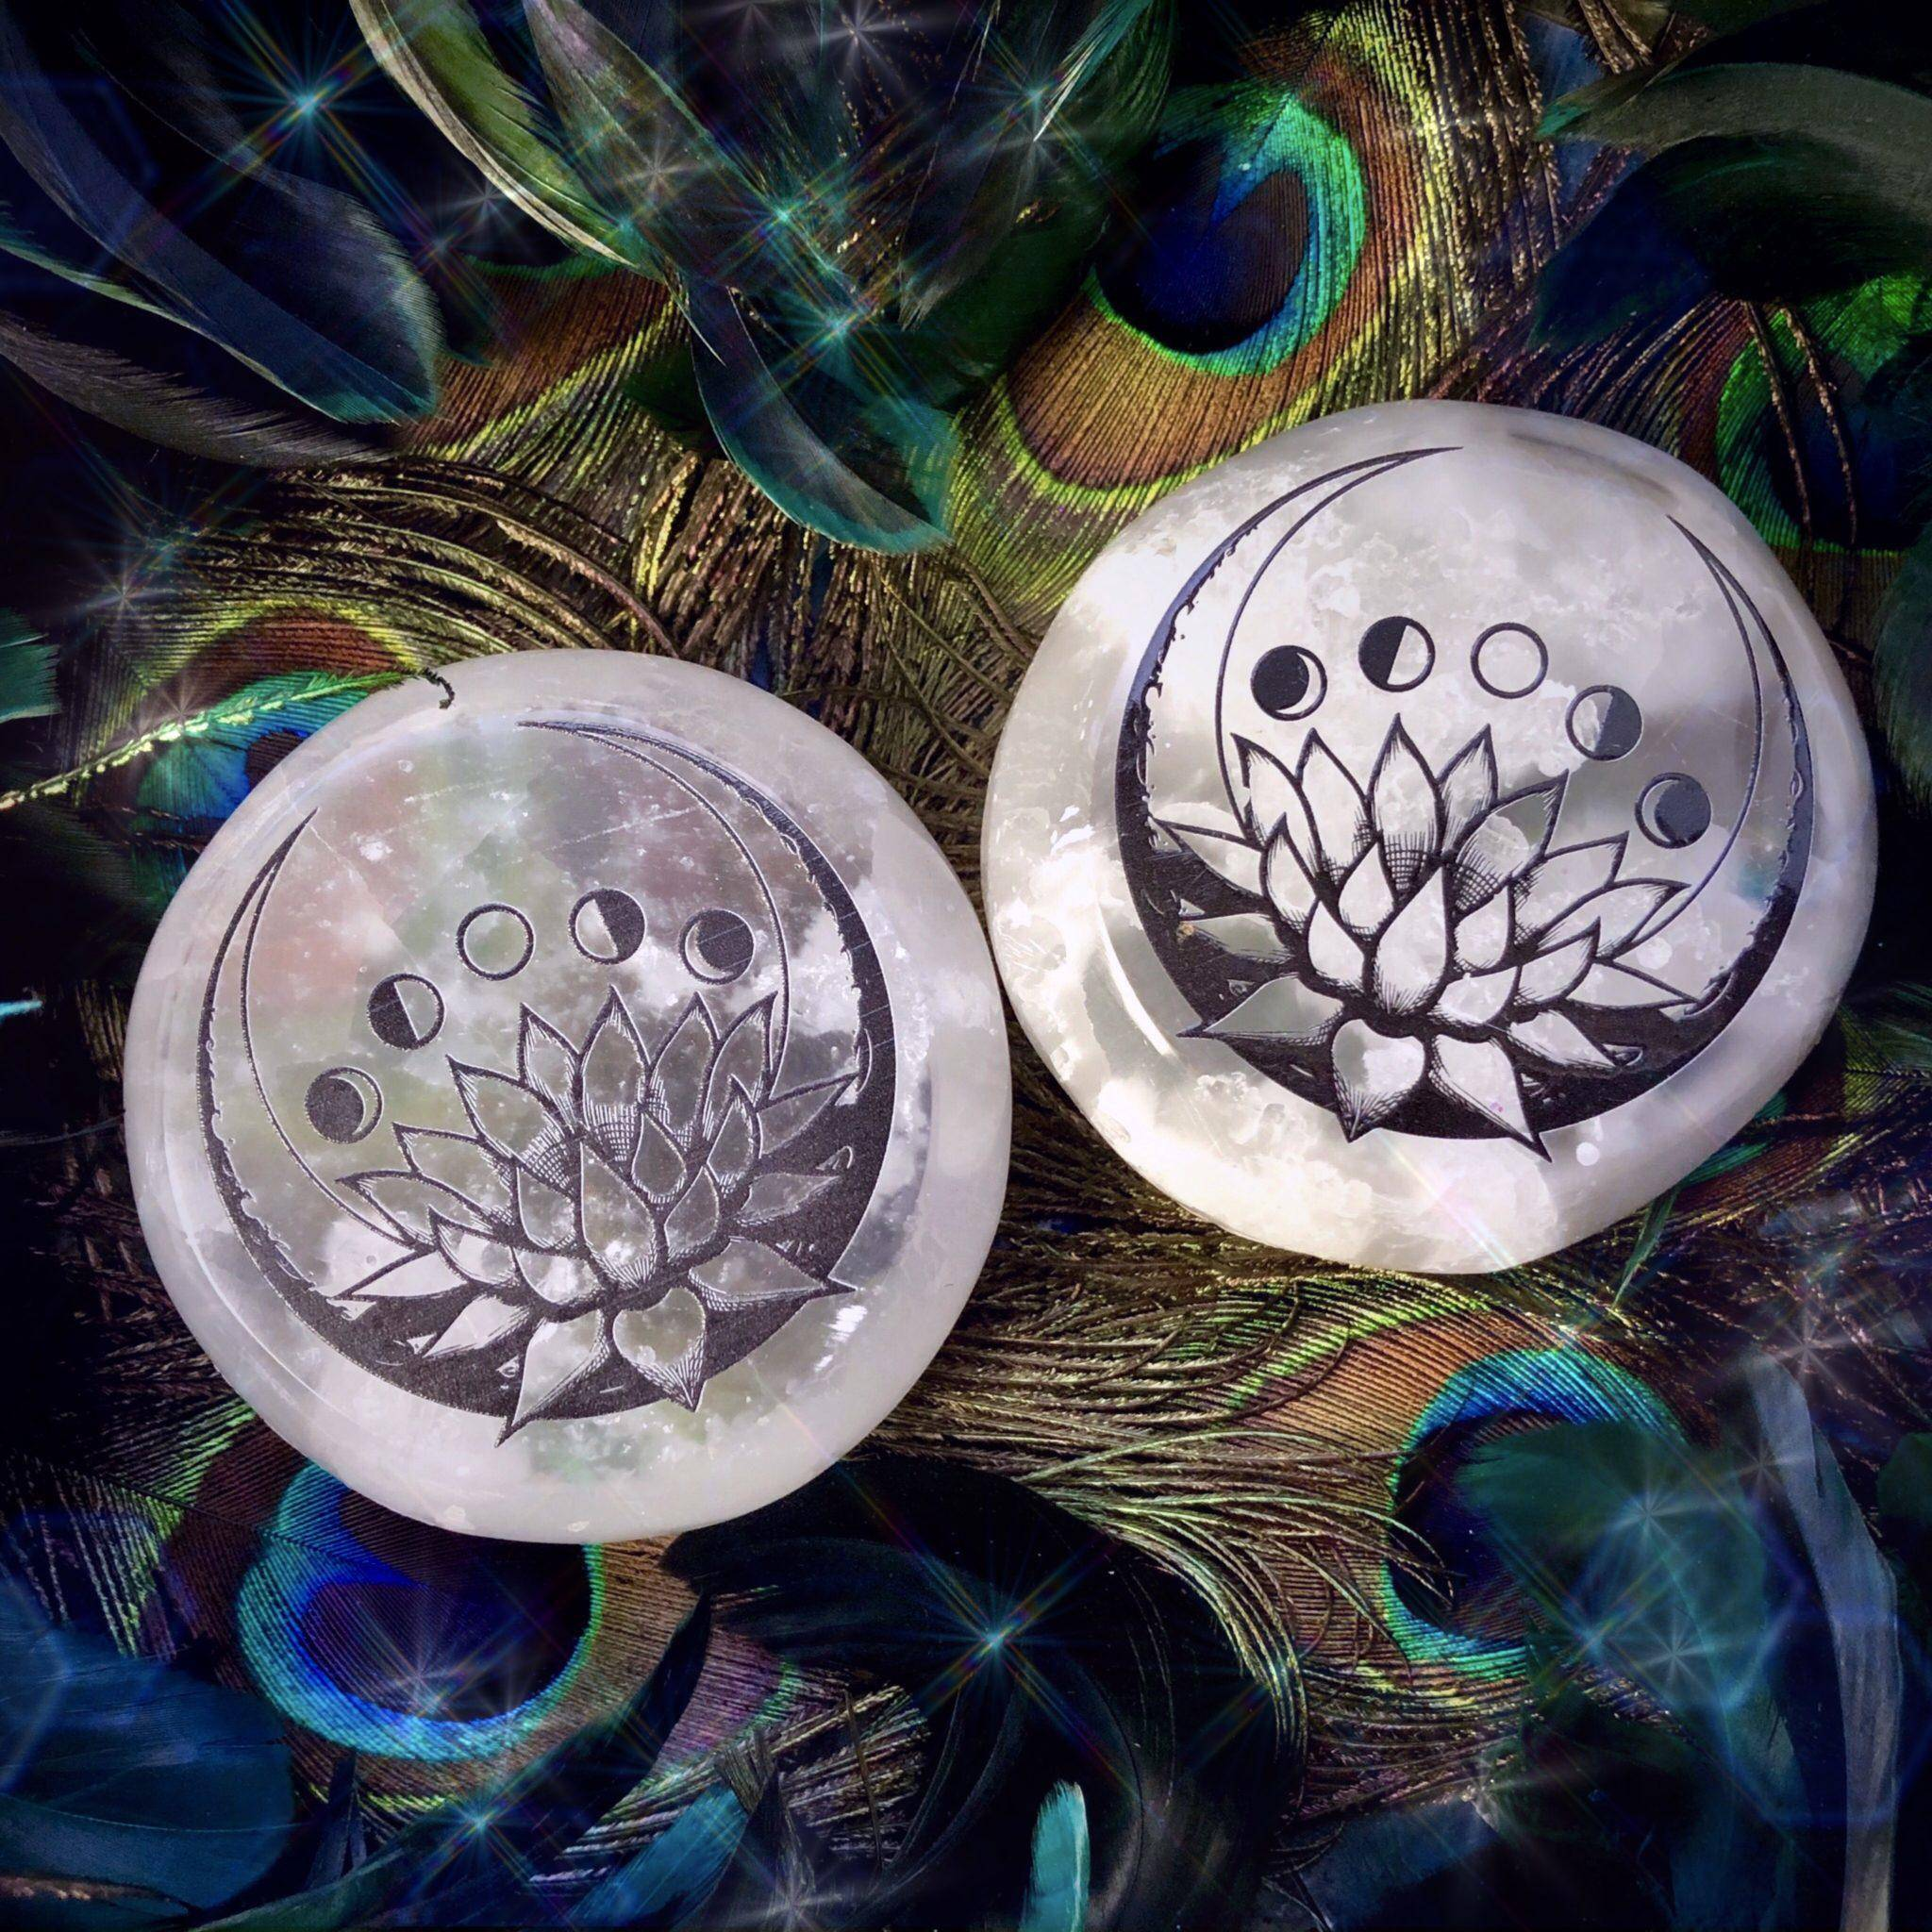 Lotus Moon Phase Printed Selenite for clarity and peace during all phases  of the moon